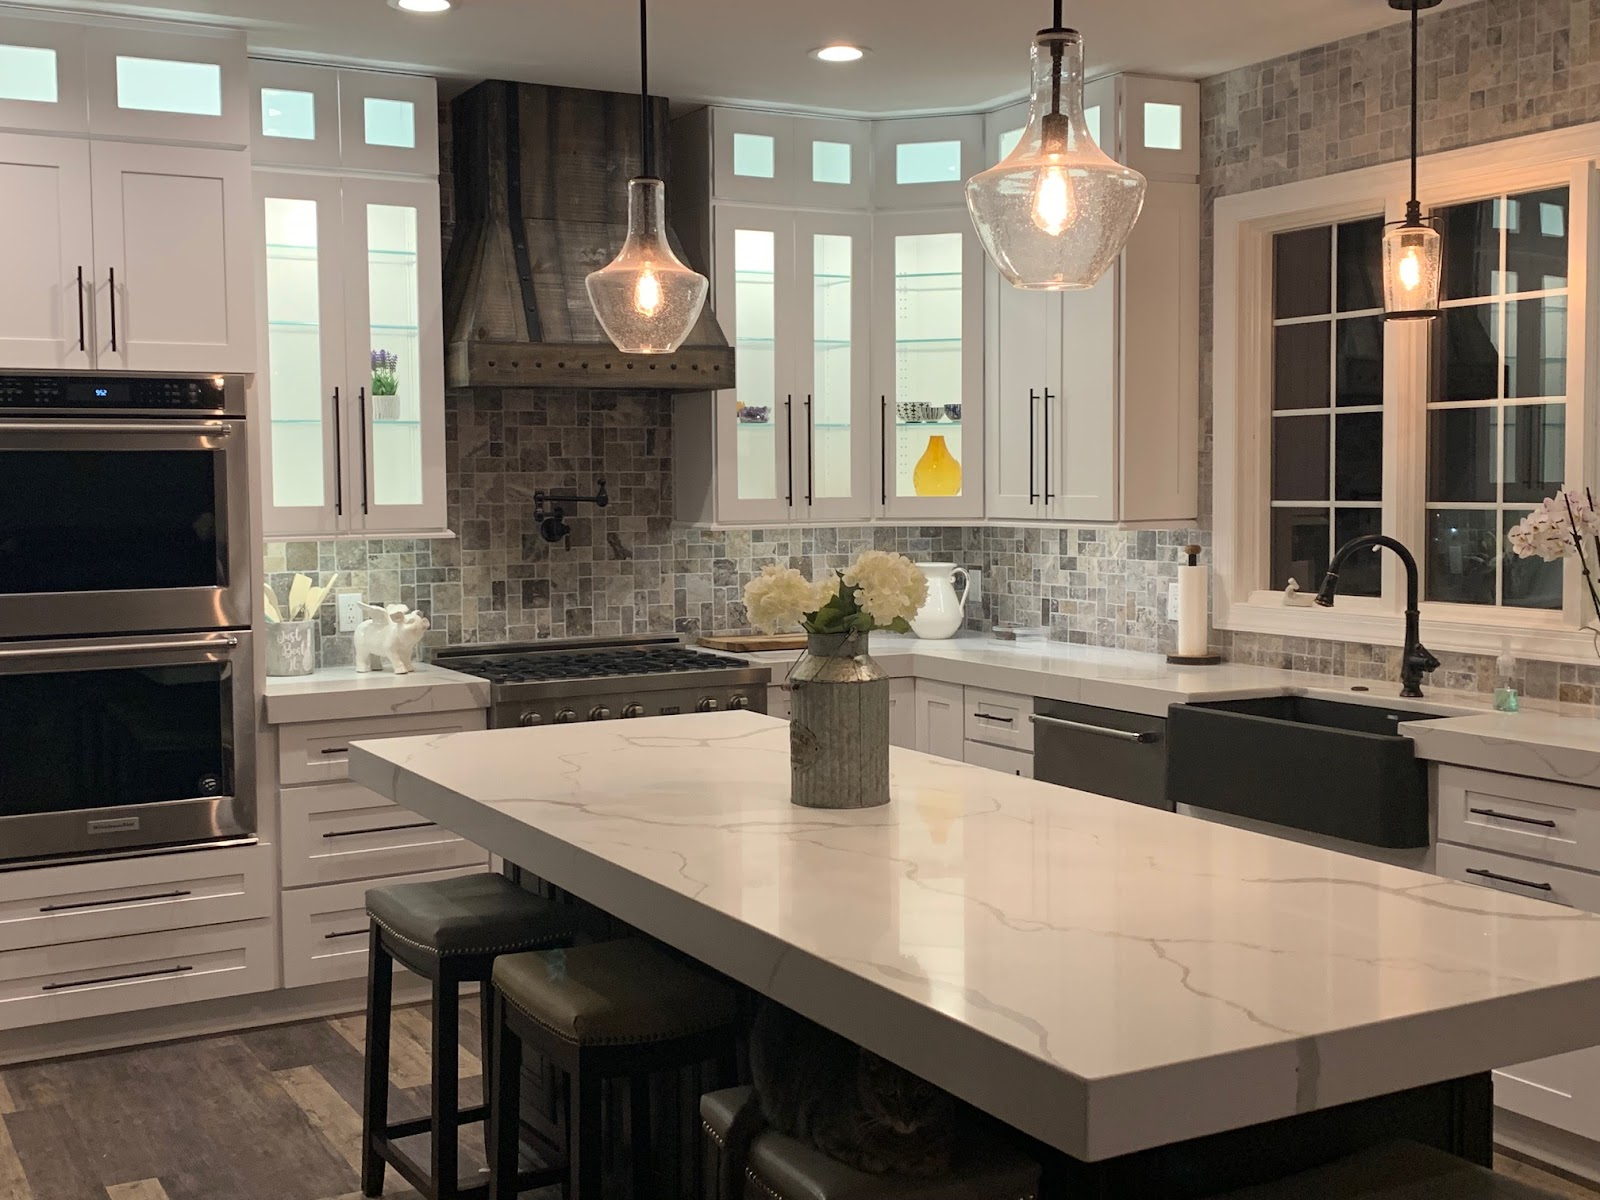 kitchen with white shaker cabinets and thick white quartz countertops. glass pendant lighting hangs above the island, and led cabinet lighting illuminates the interior of the cabinets